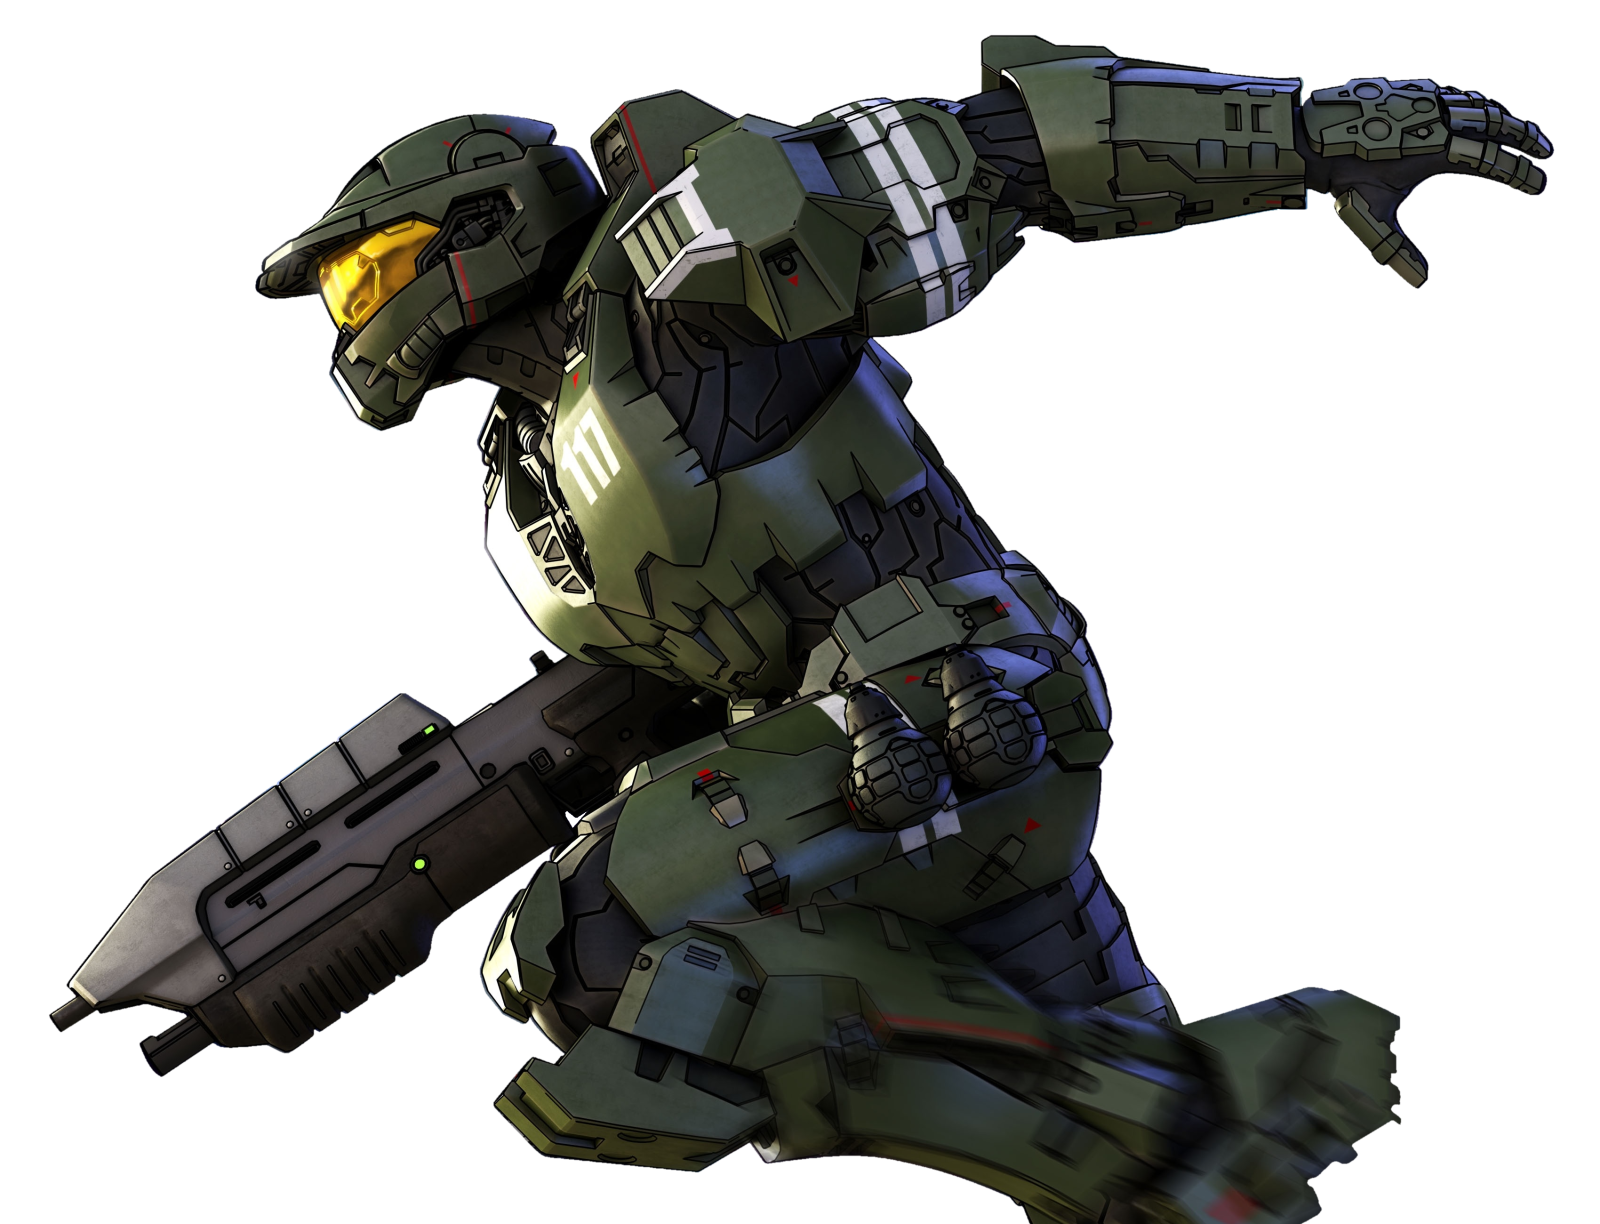 John-117 | Halopedia | FANDOM powered by Wikia